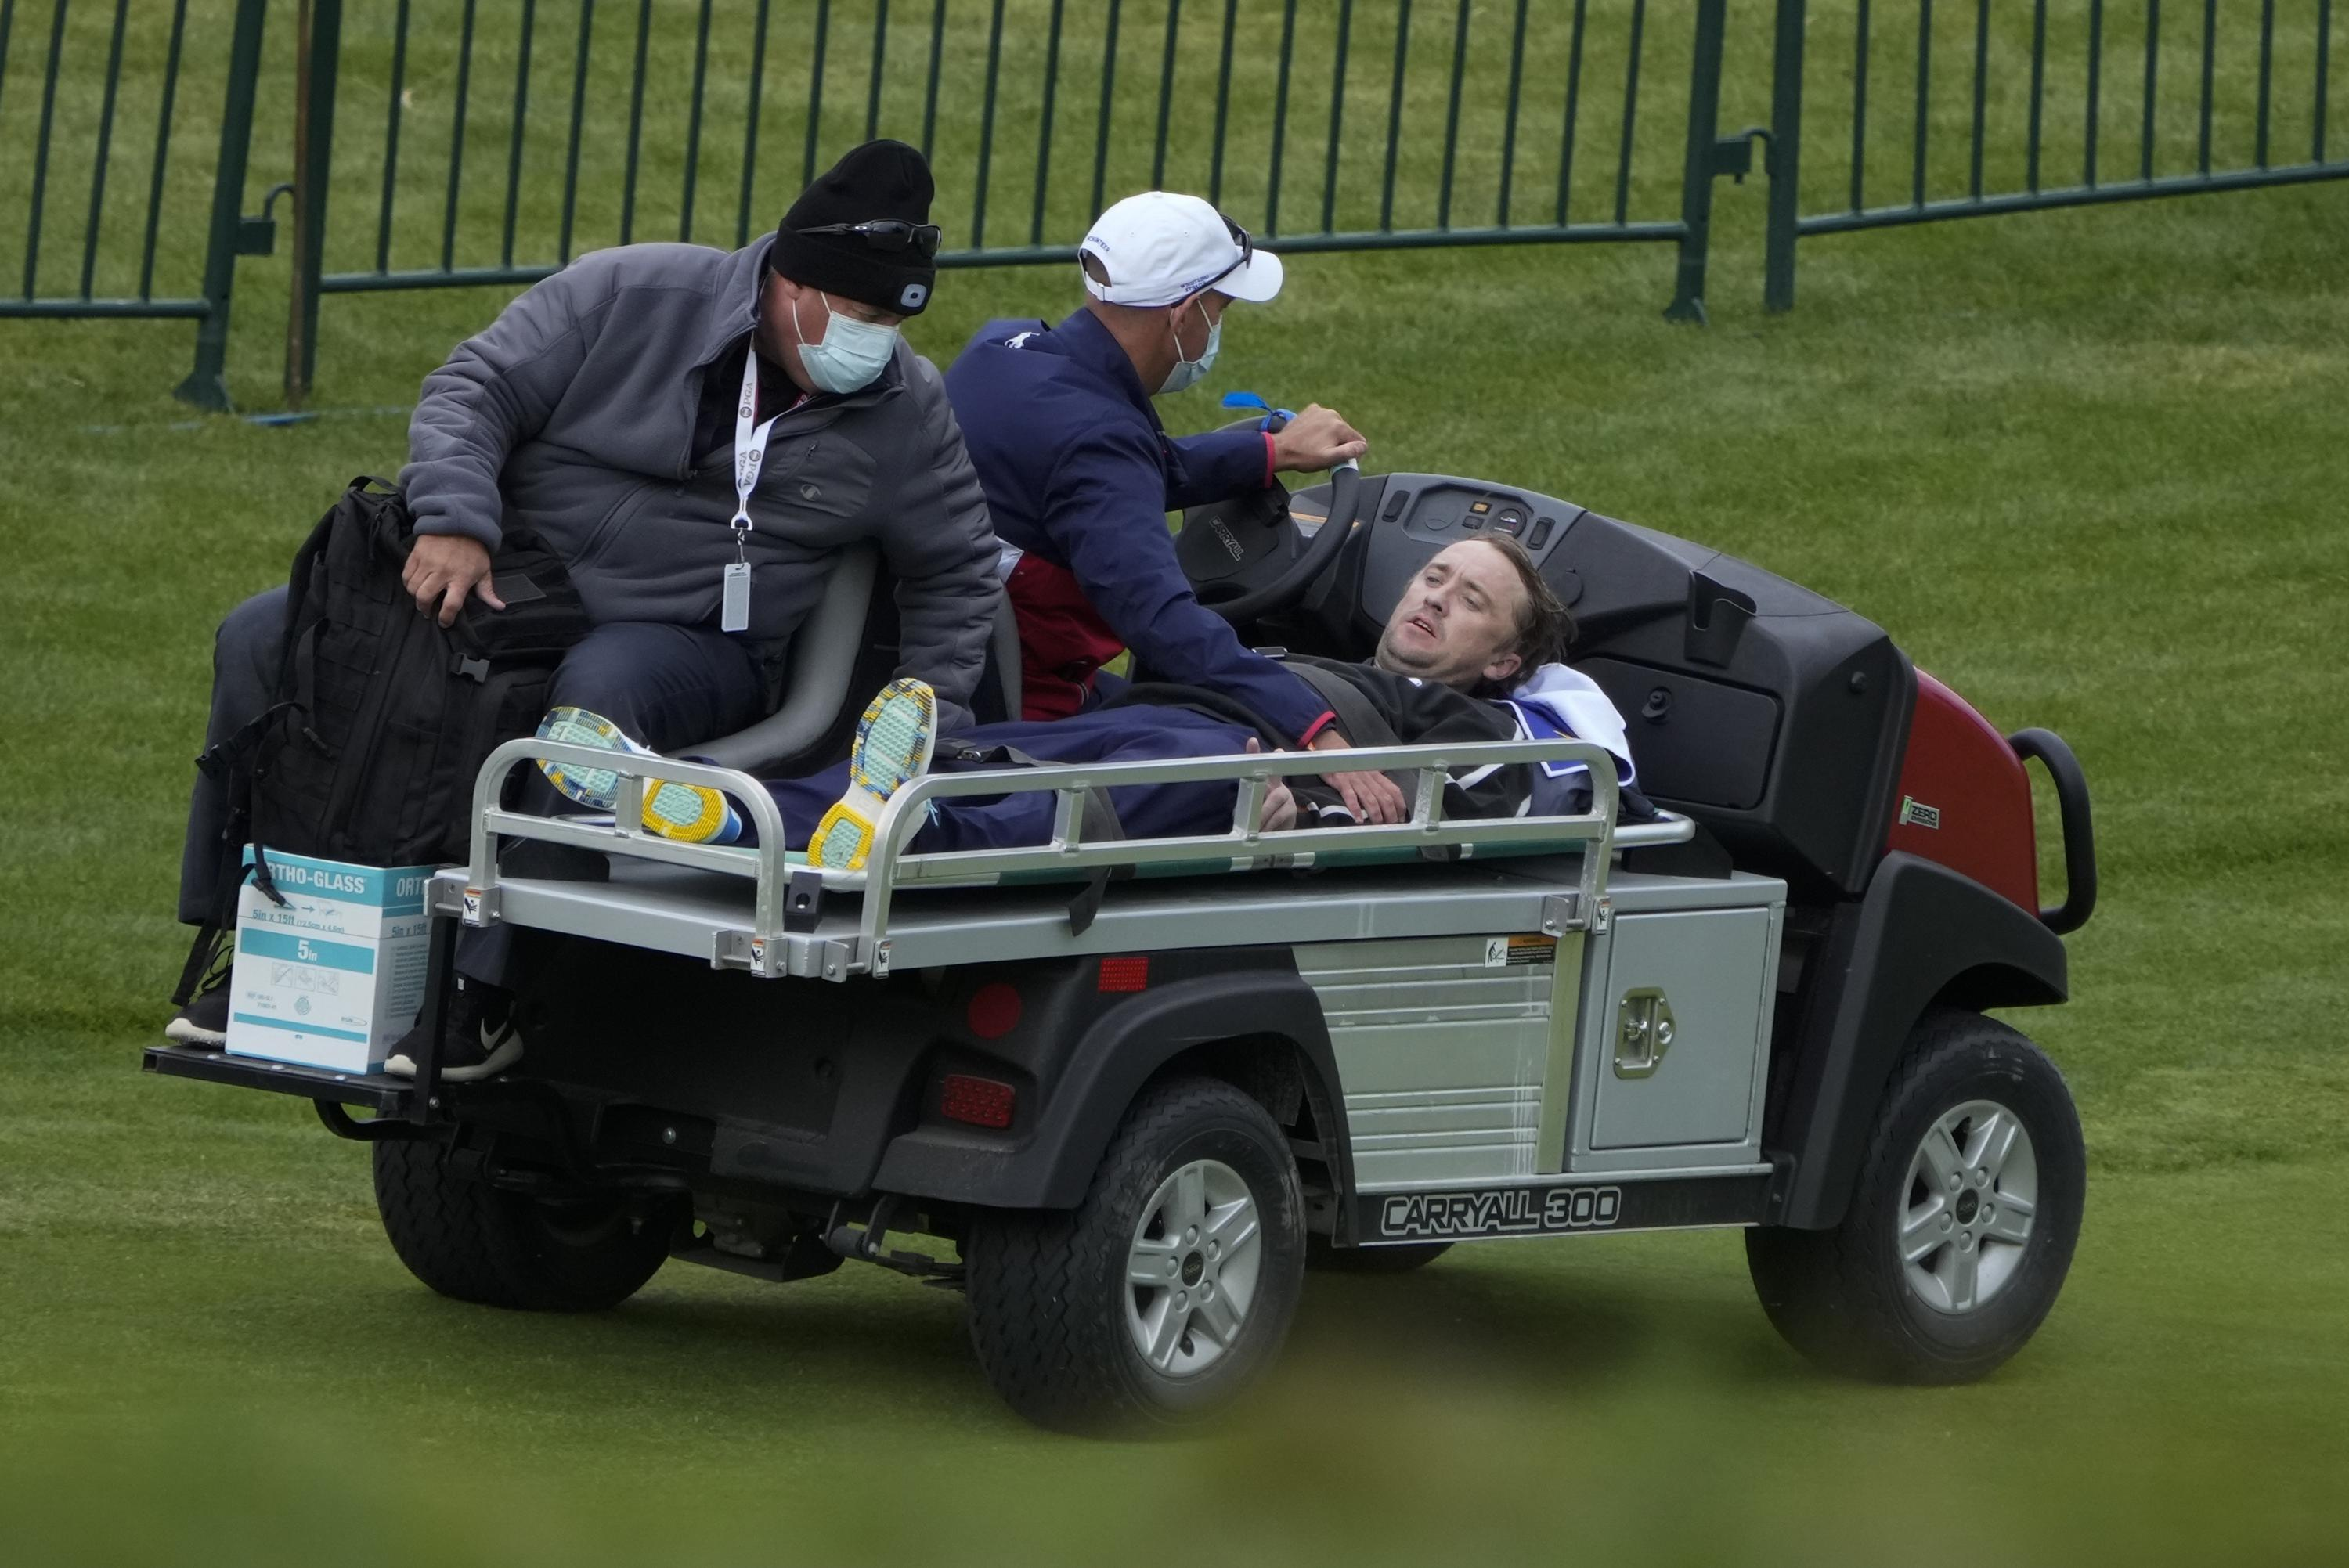 Tom Felton of 'Harry Potter' fame collapses at Ryder Cup - Associated Press